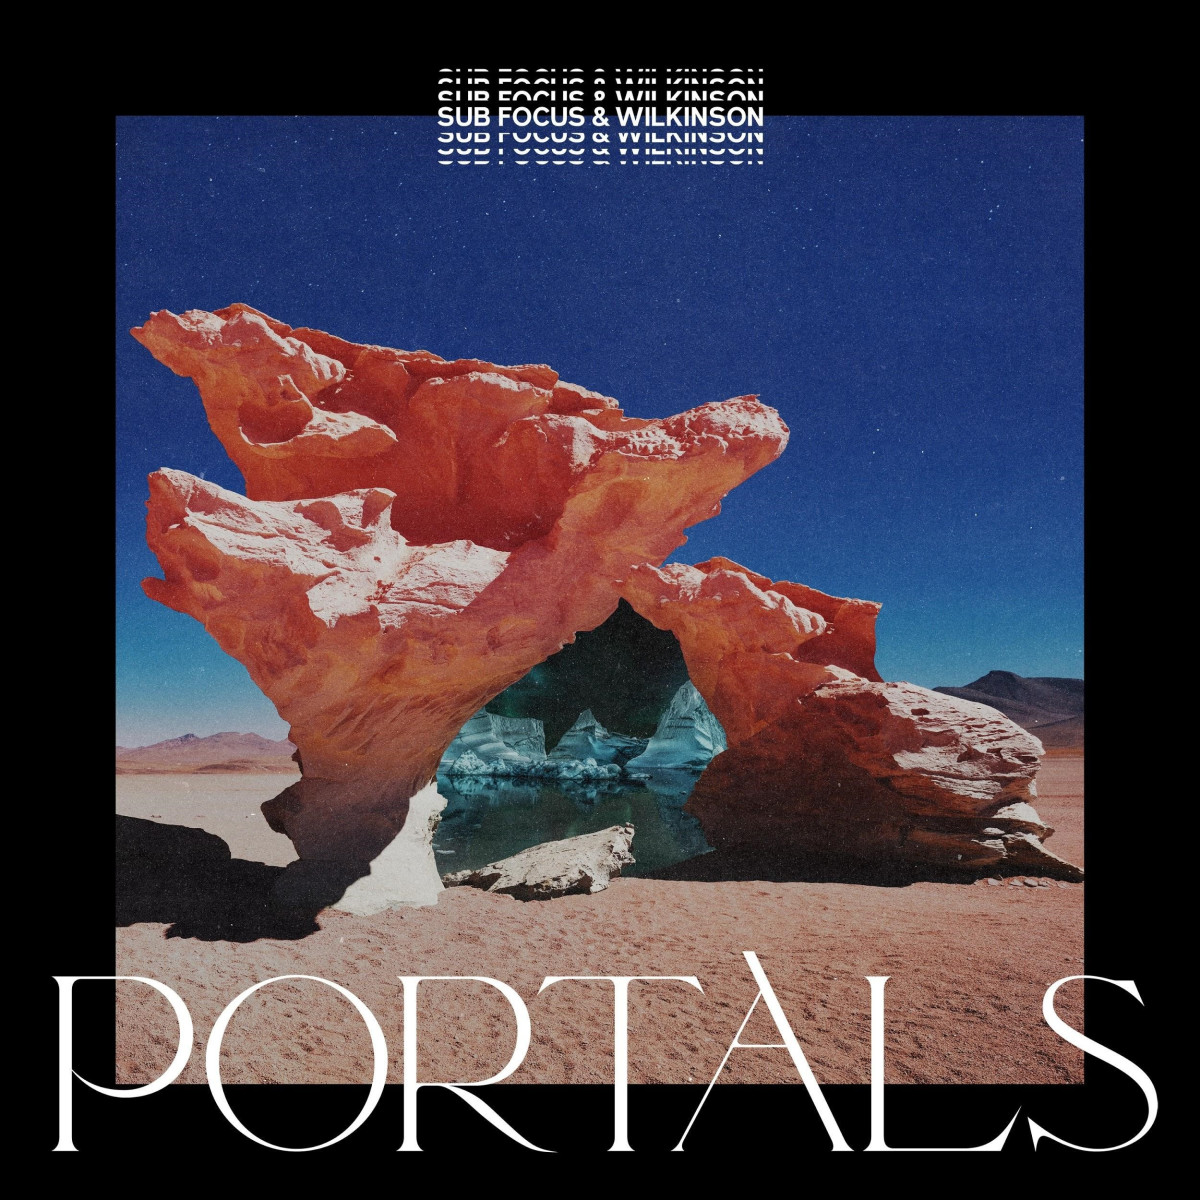 "Sub Focus and Wilkinson Reveal New Forthcoming Album, ""Portals"" - EDM.com -  The Latest Electronic Dance Music News, Reviews & Artists"